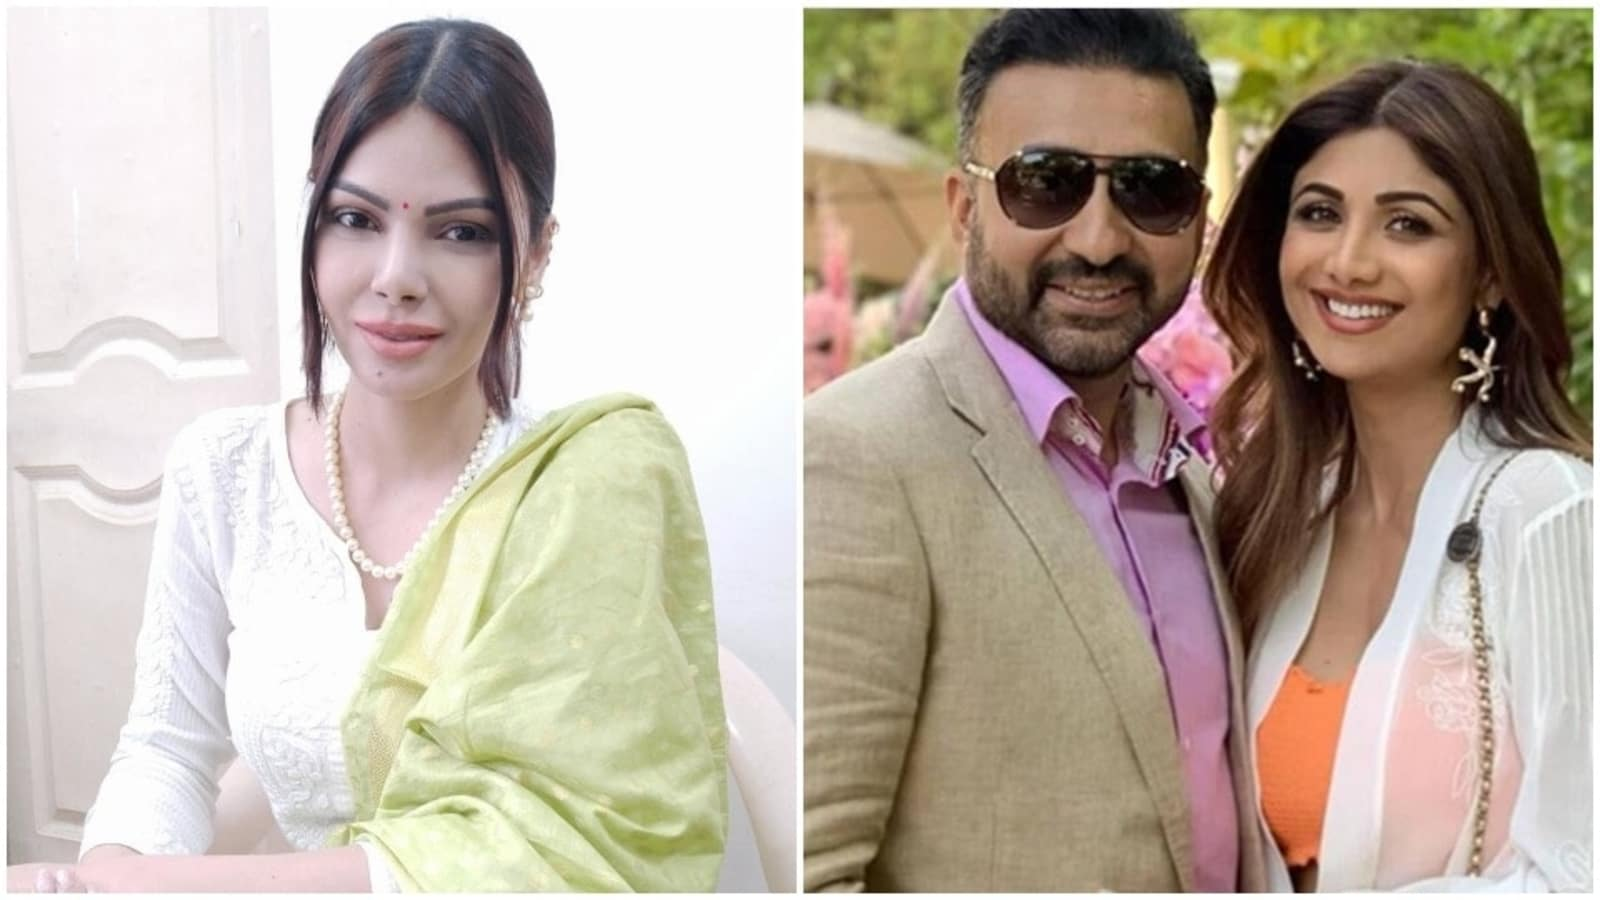 Shilpa Shetty, Raj Kundra's lawyers issue statement against Sherlyn Chopra, threaten her with defamation suit -India News Cart